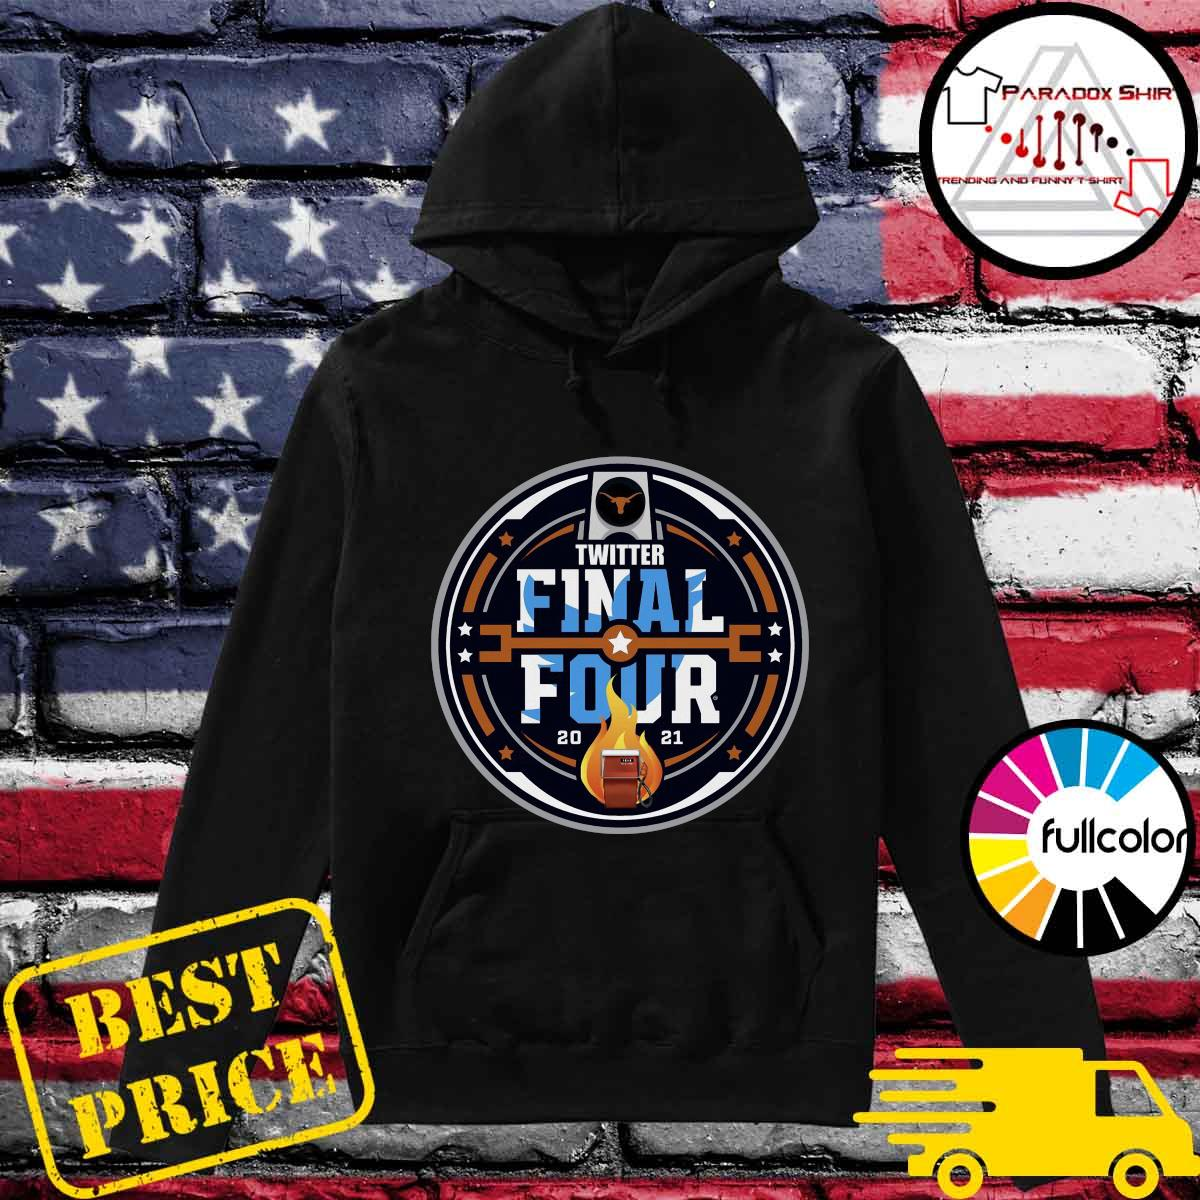 Official Twitter Final Four 2021 Basketball Shirt Hoodie